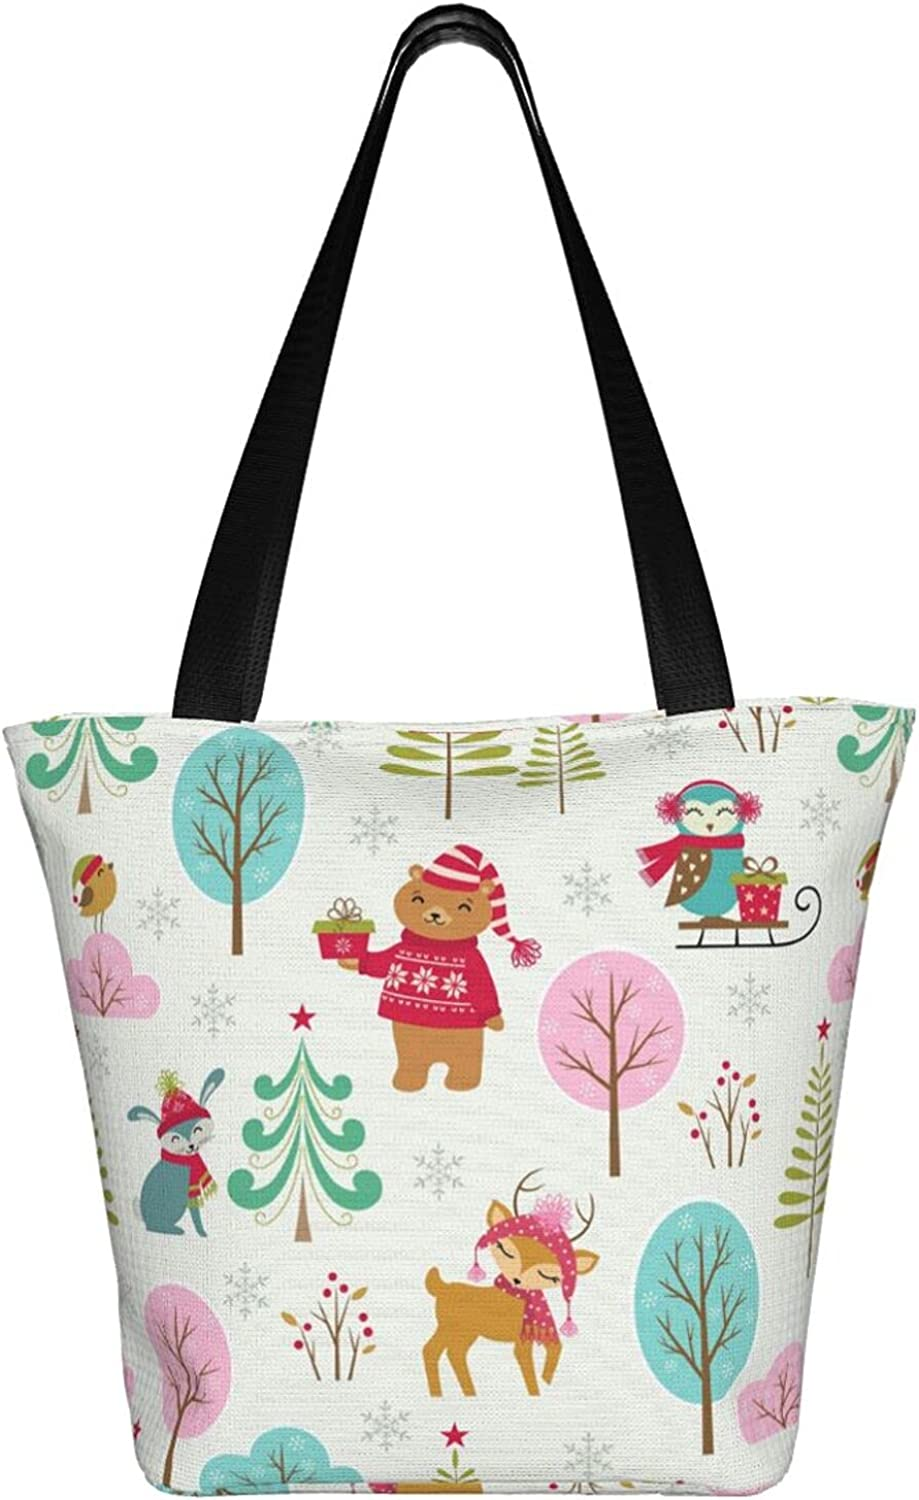 Cenken Large Tote Bag With Wild Women 2021 spring and summer new Print Animals Sh And Gifts Industry No. 1